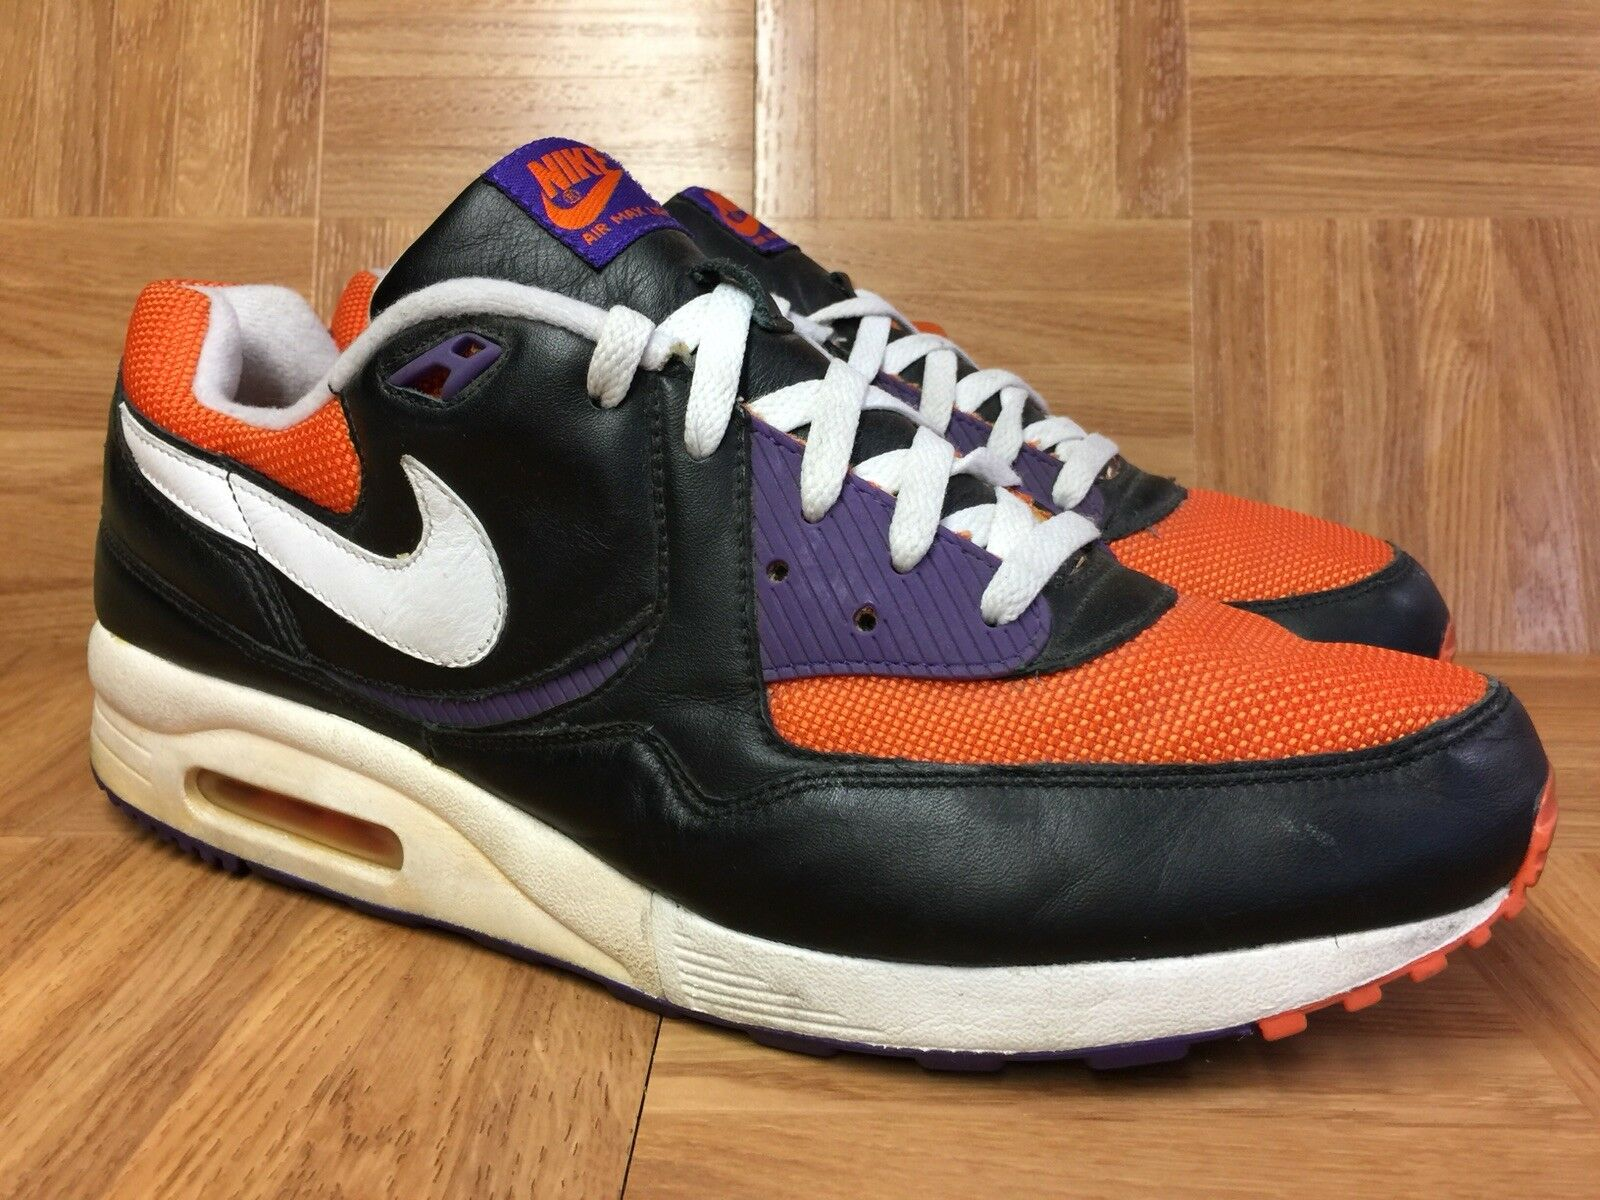 RARE RARE RARE Nike Air Max Light Black orange Blaze Purple Sz 13 315927-012 Halloween a584ce